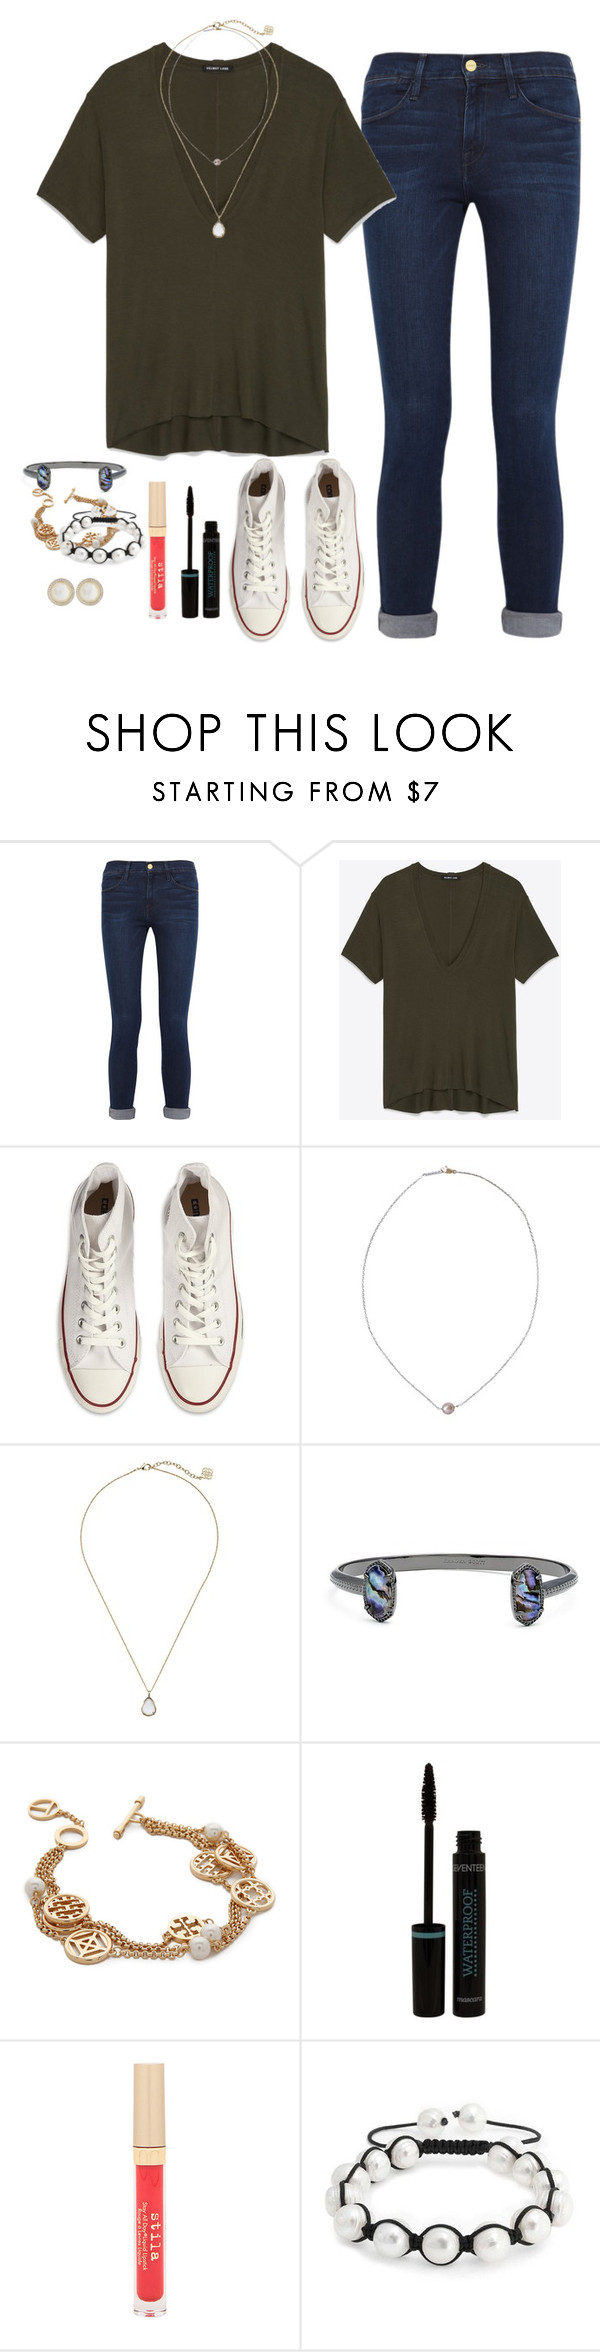 """Just got asked out"" by oliveee-heinzzz ❤ liked on Polyvore featuring Frame Denim, Helmut Lang, Converse, Karapetyan, Kendra Scott, Tory Burch, Stila, Bling Jewelry and Ippolita"